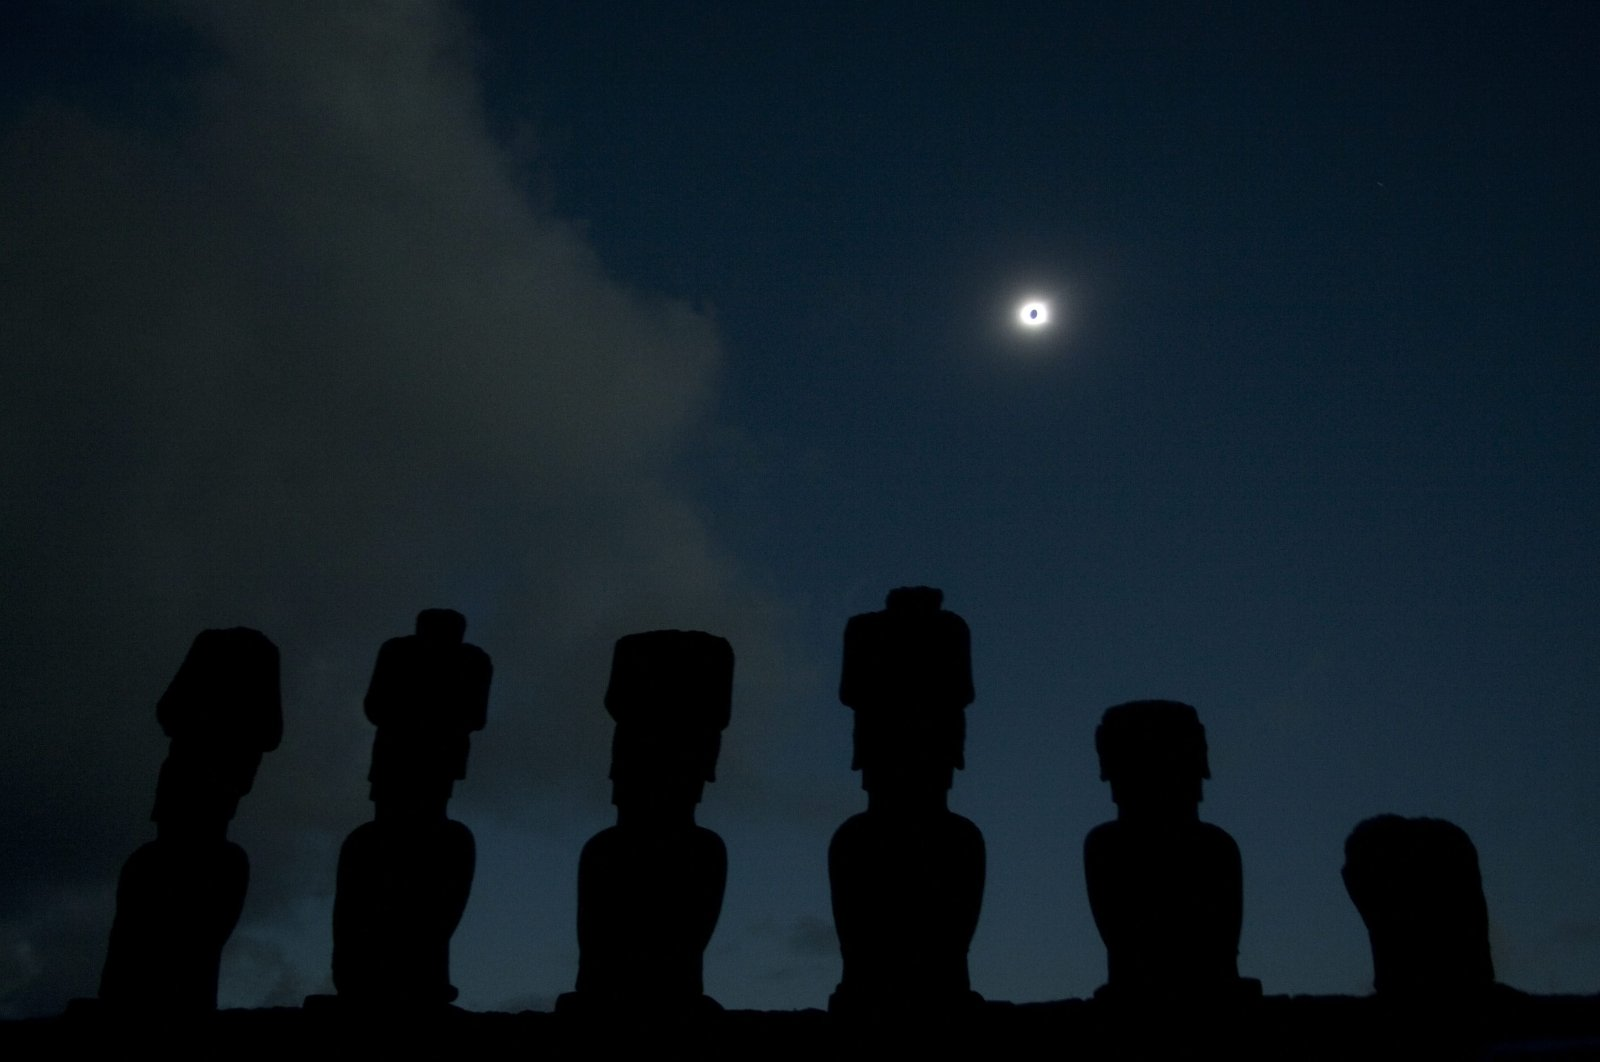 In this photo released by China's Xinhua News Agency, gigantic stone heads known as moais are silhouetted during a solar eclipse, Easter Island, Chile, July 11, 2010. (AP Photo)